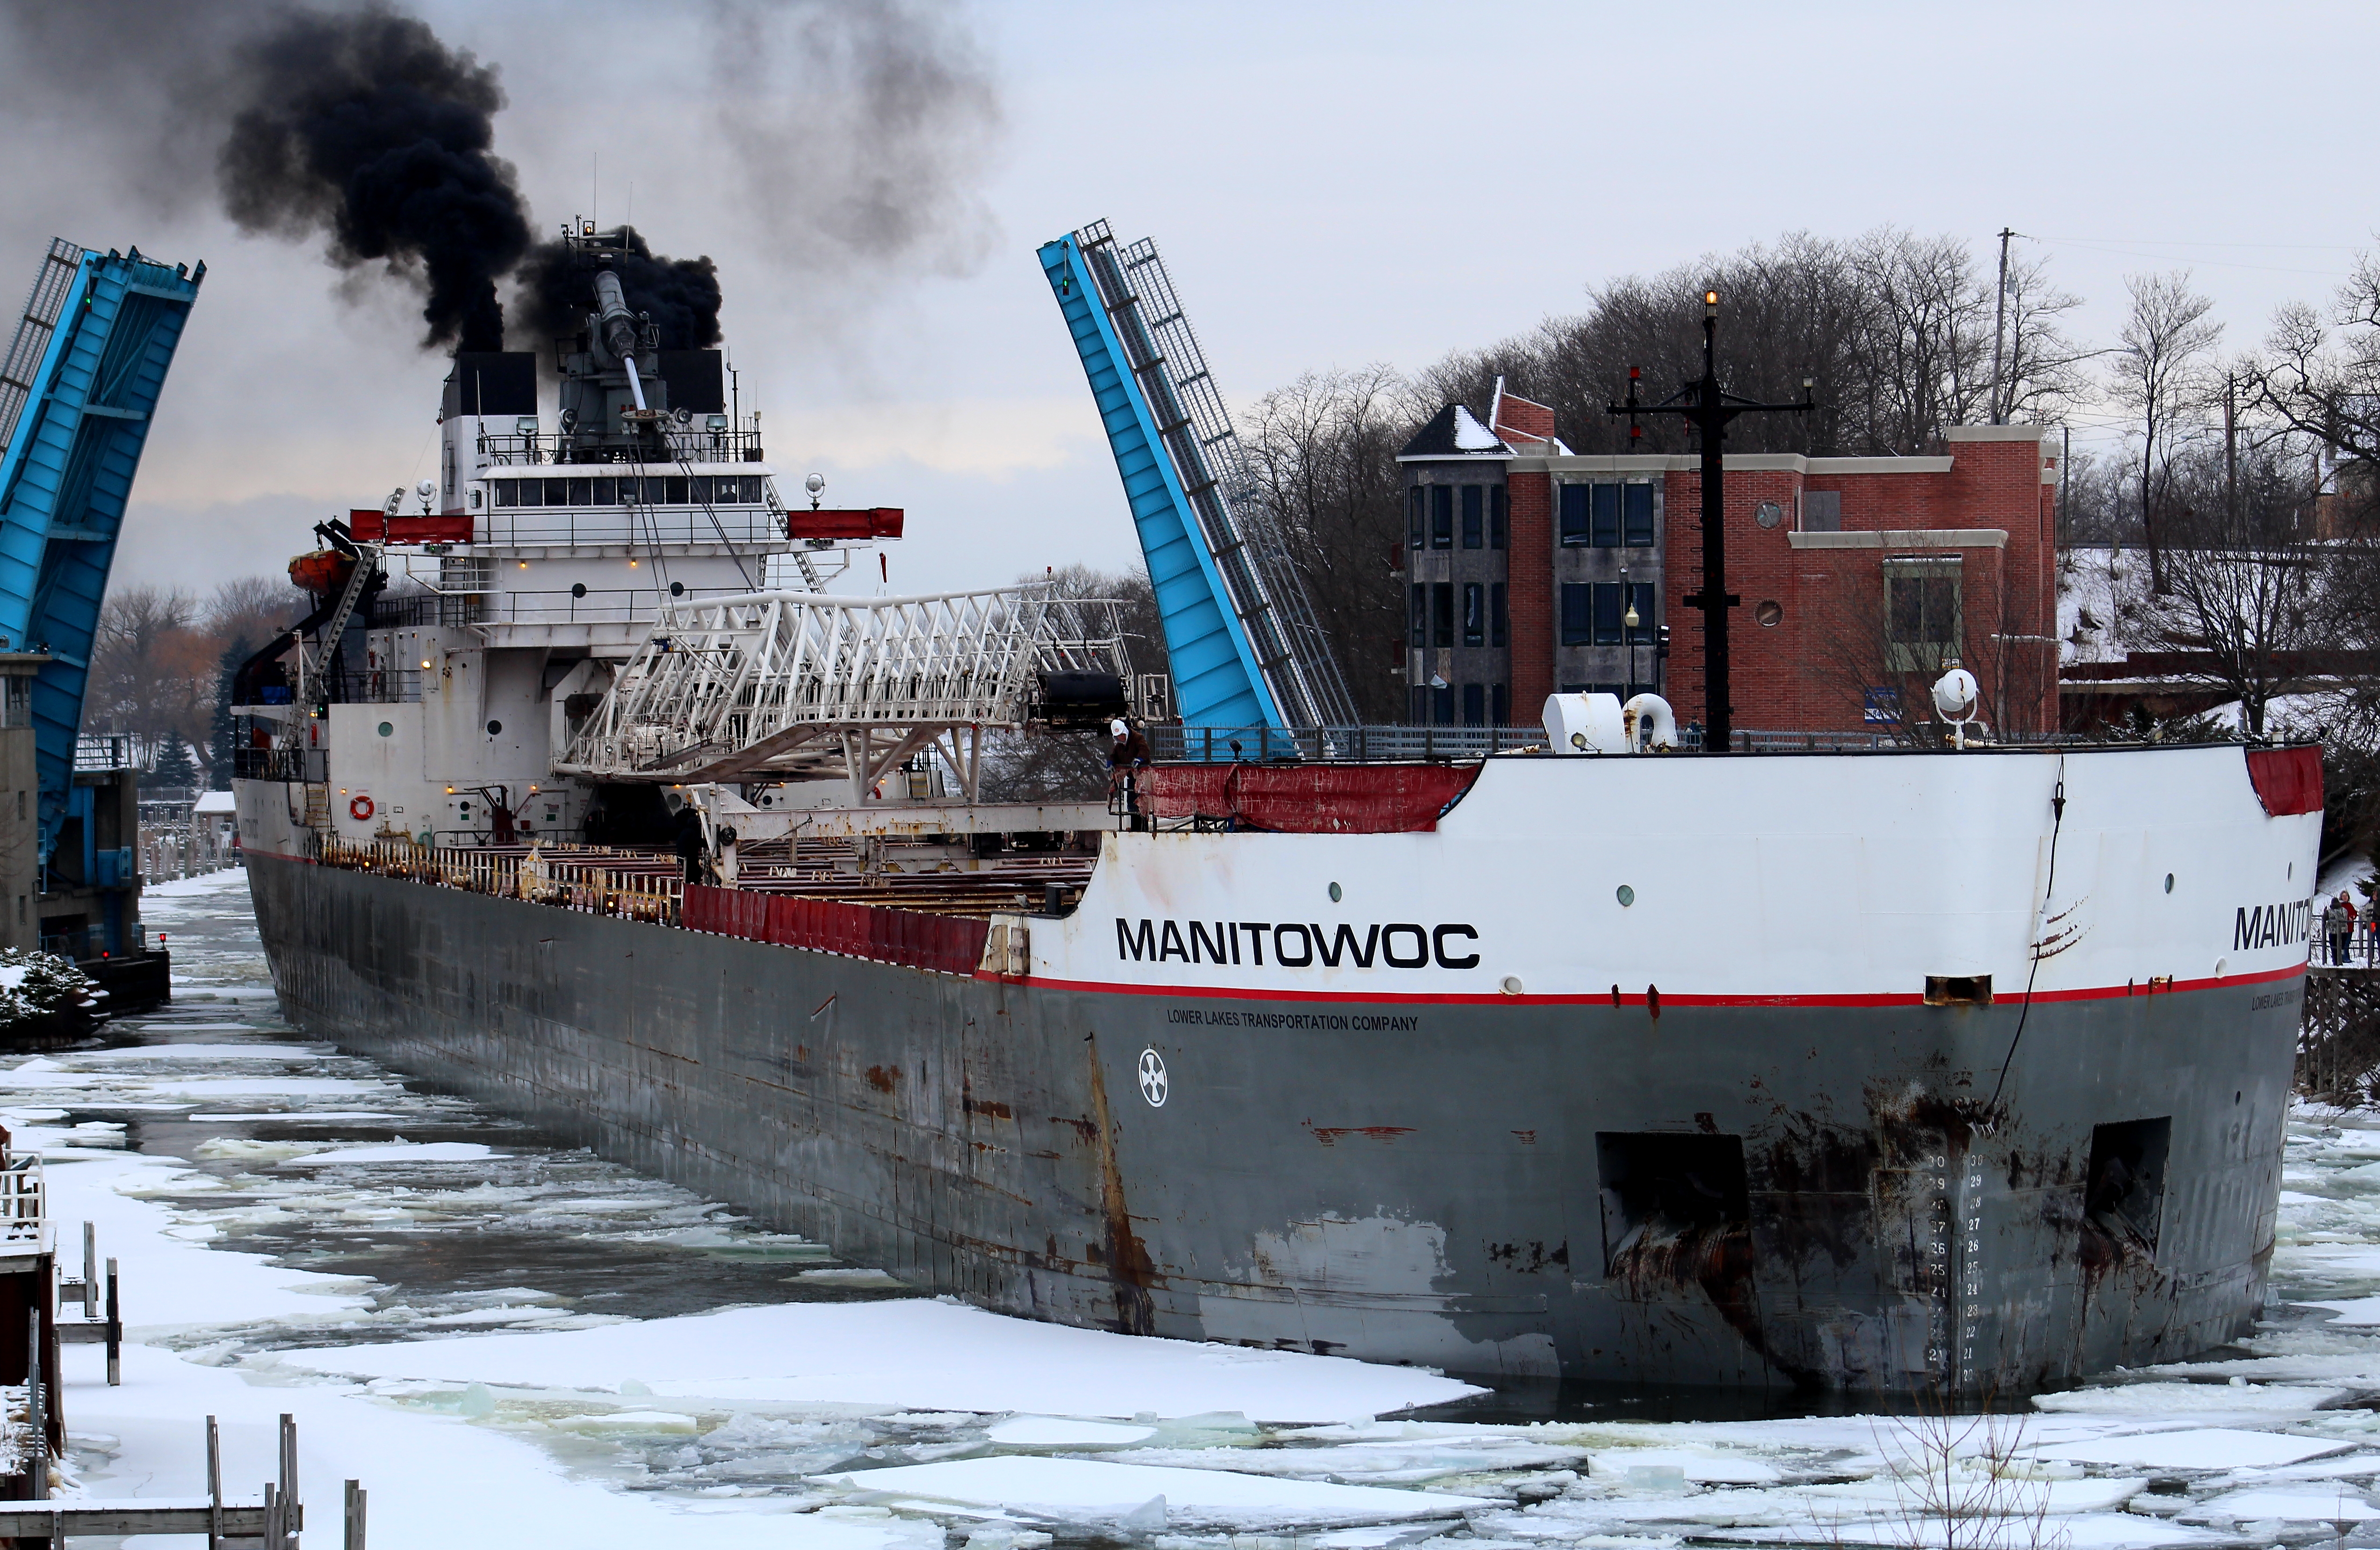 Freighter Manitowoc going through Maple Street Bridge in the winter with ice in the channel